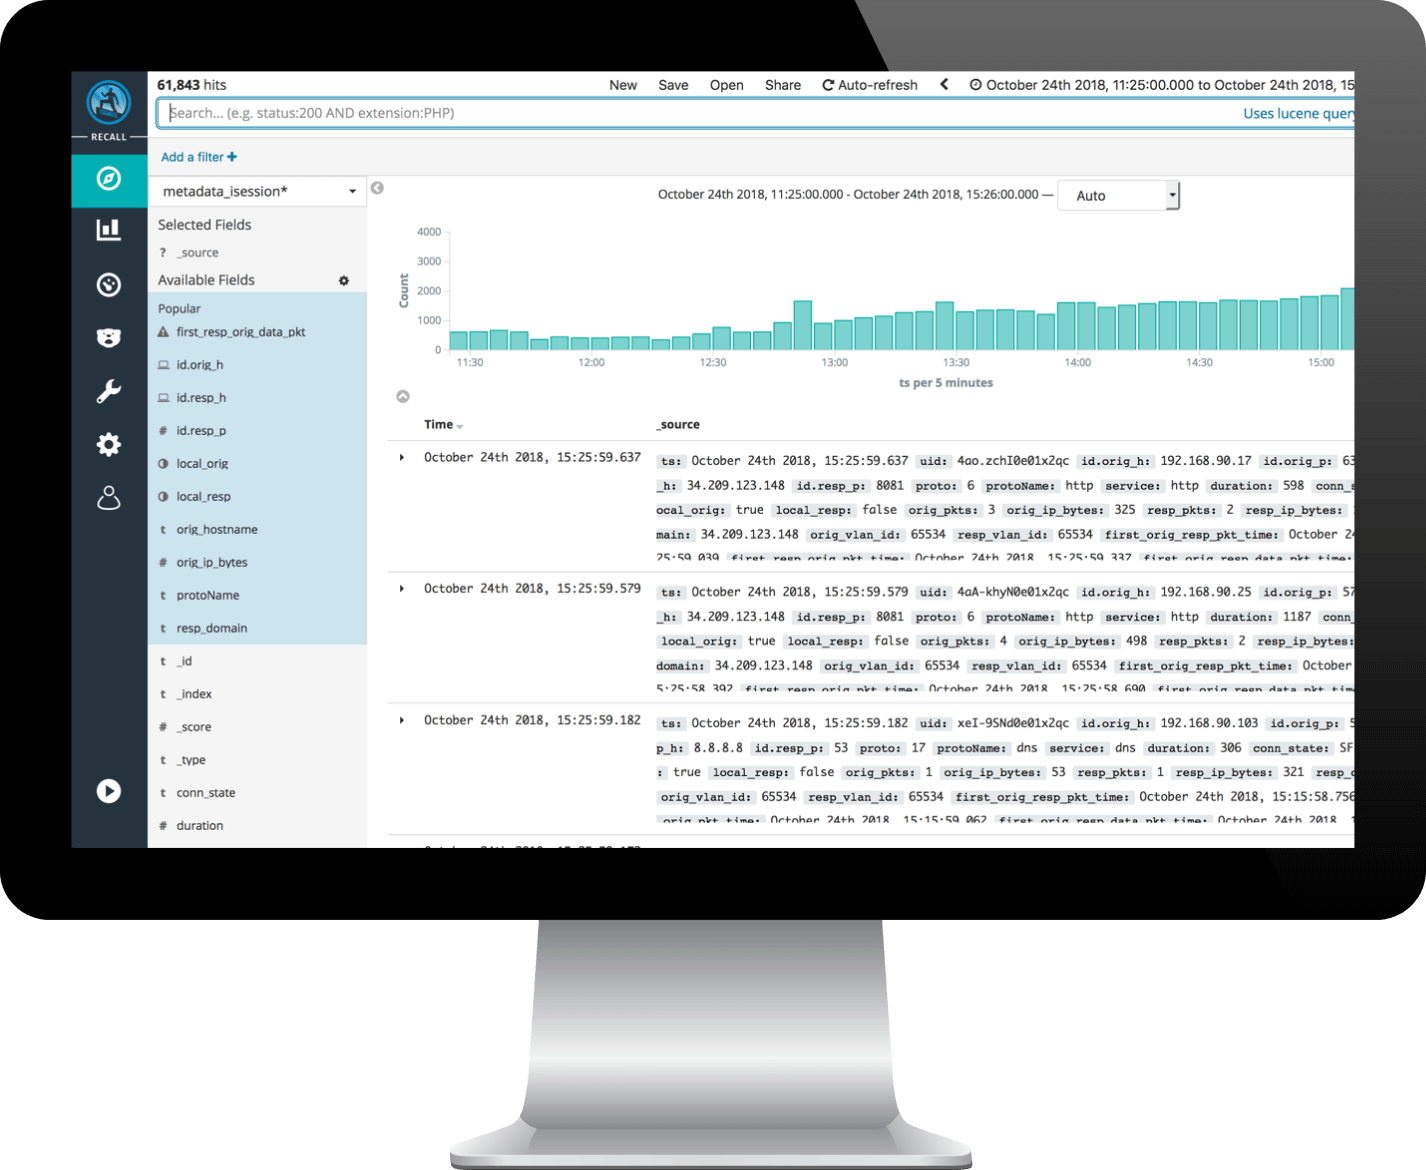 Full metadata search capabilities and limitless data storage